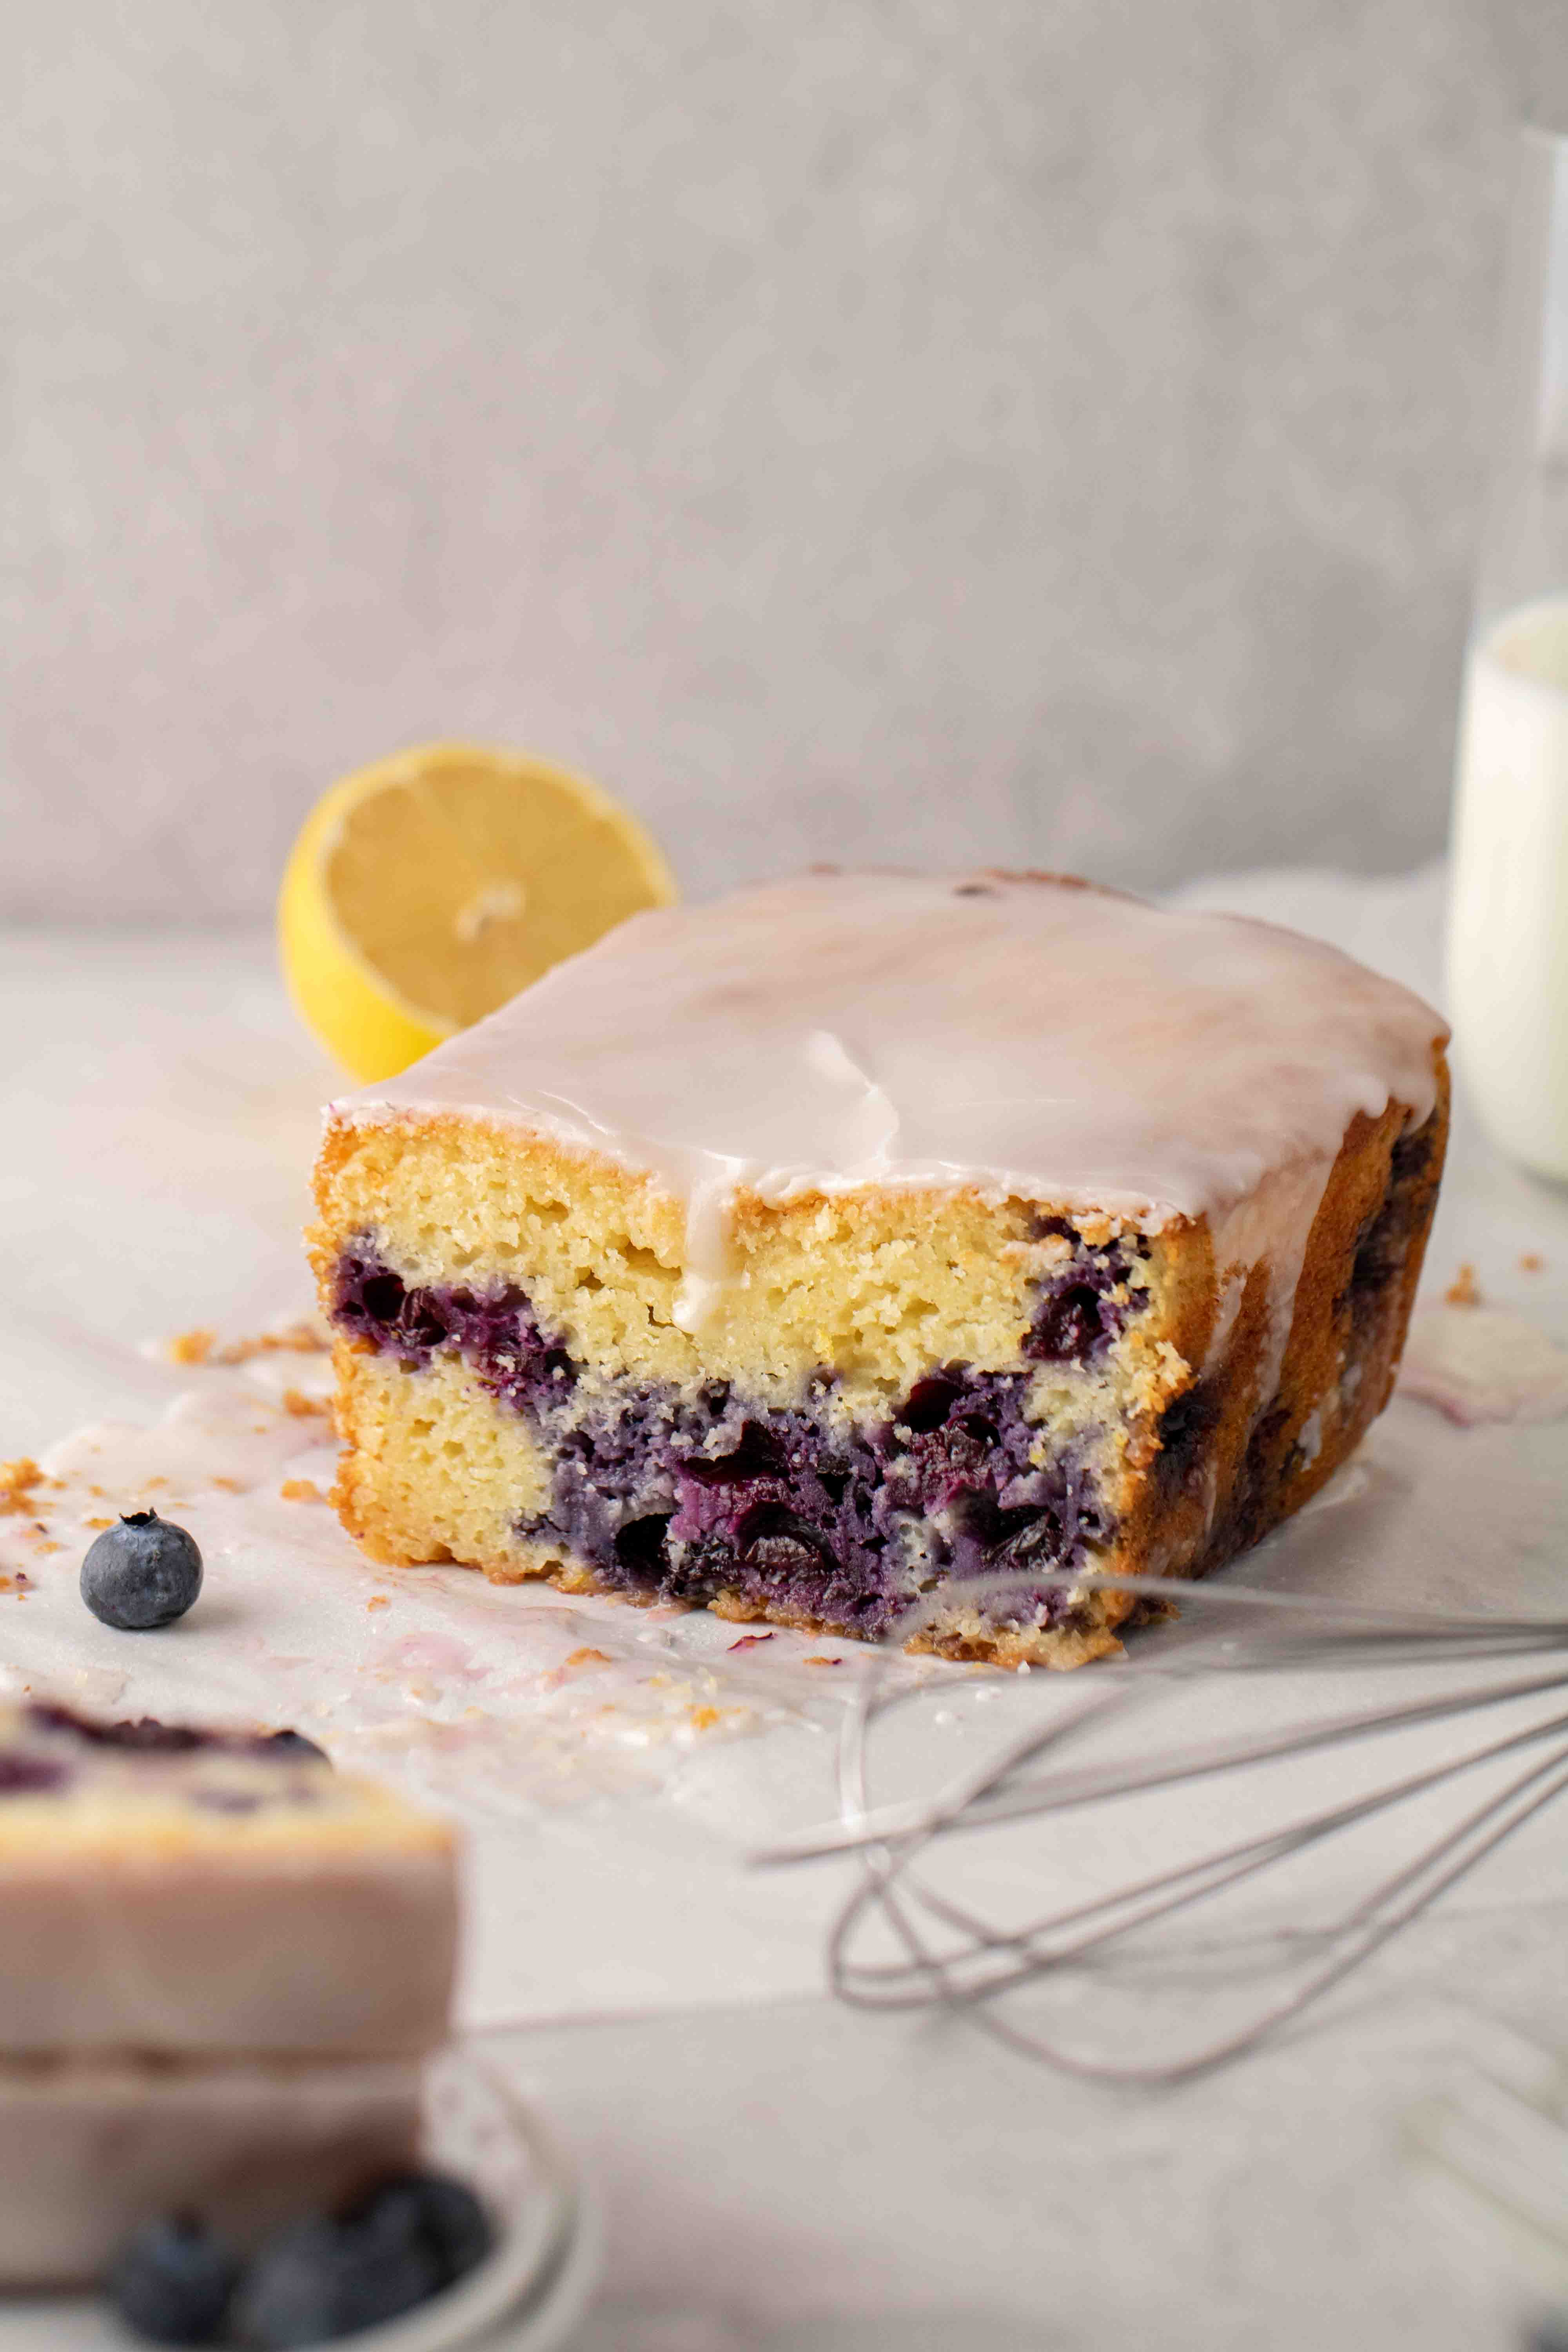 Sliced loaf cake with blueberries and lemon